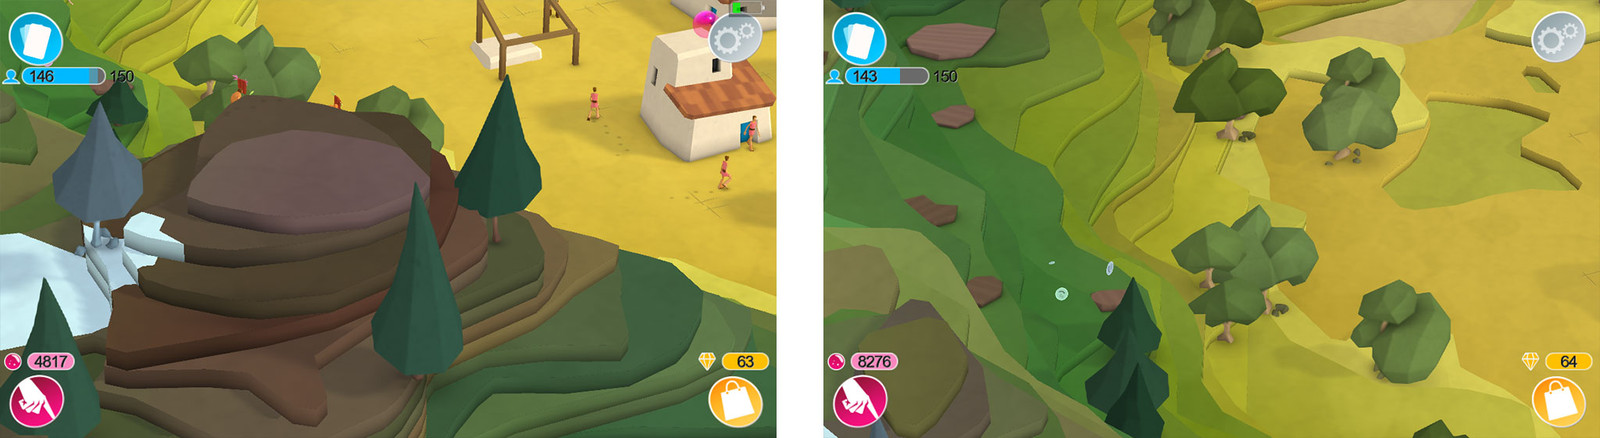 Godus: Top 10 tips, hints, and cheats you need to know!